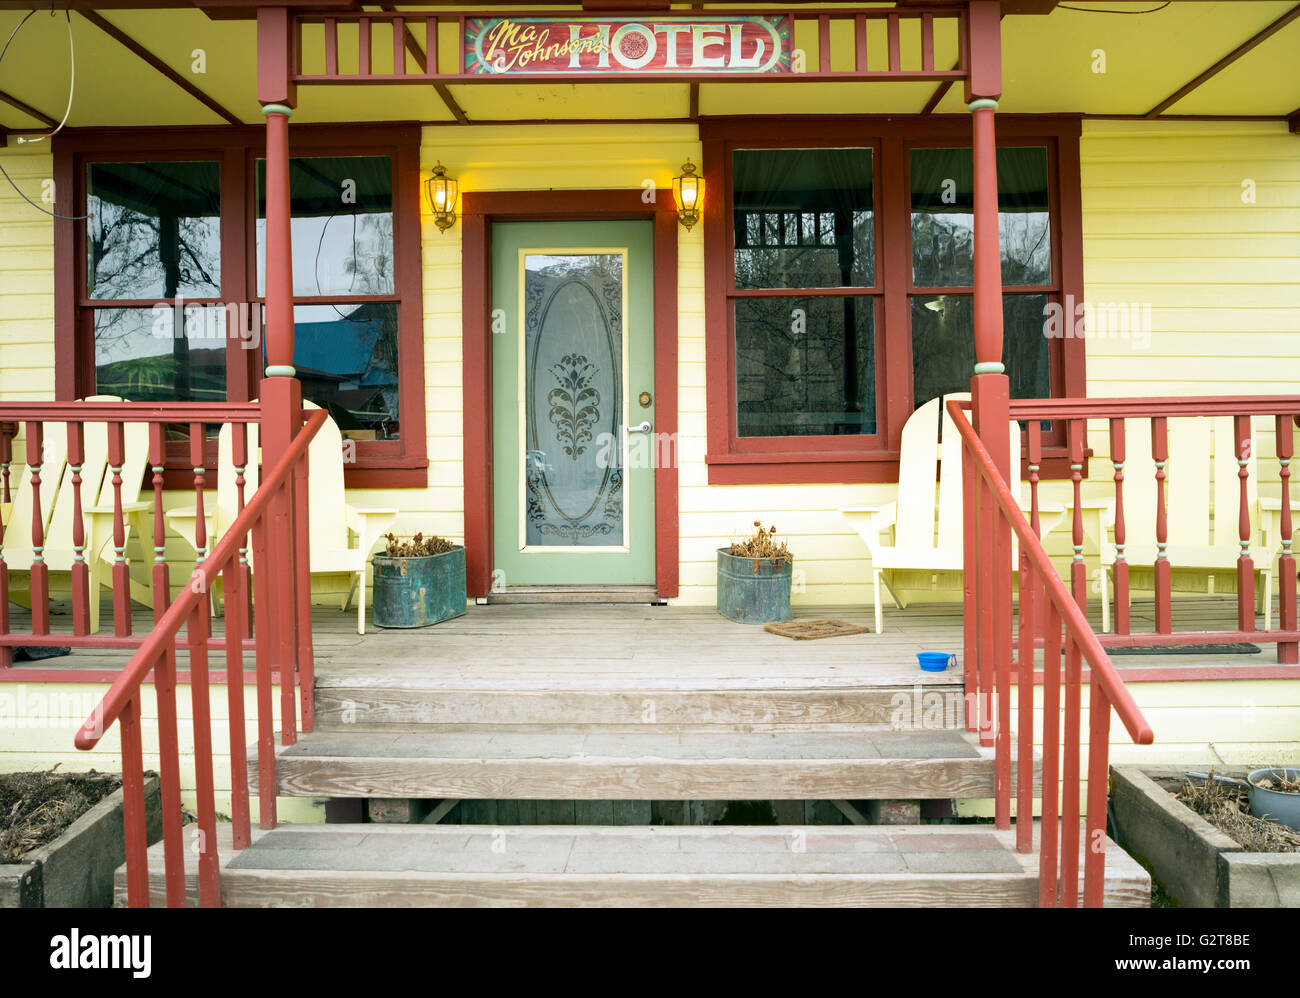 The unique Ma Johnson's Hotel in McCarthy Alaska USA - Stock Image